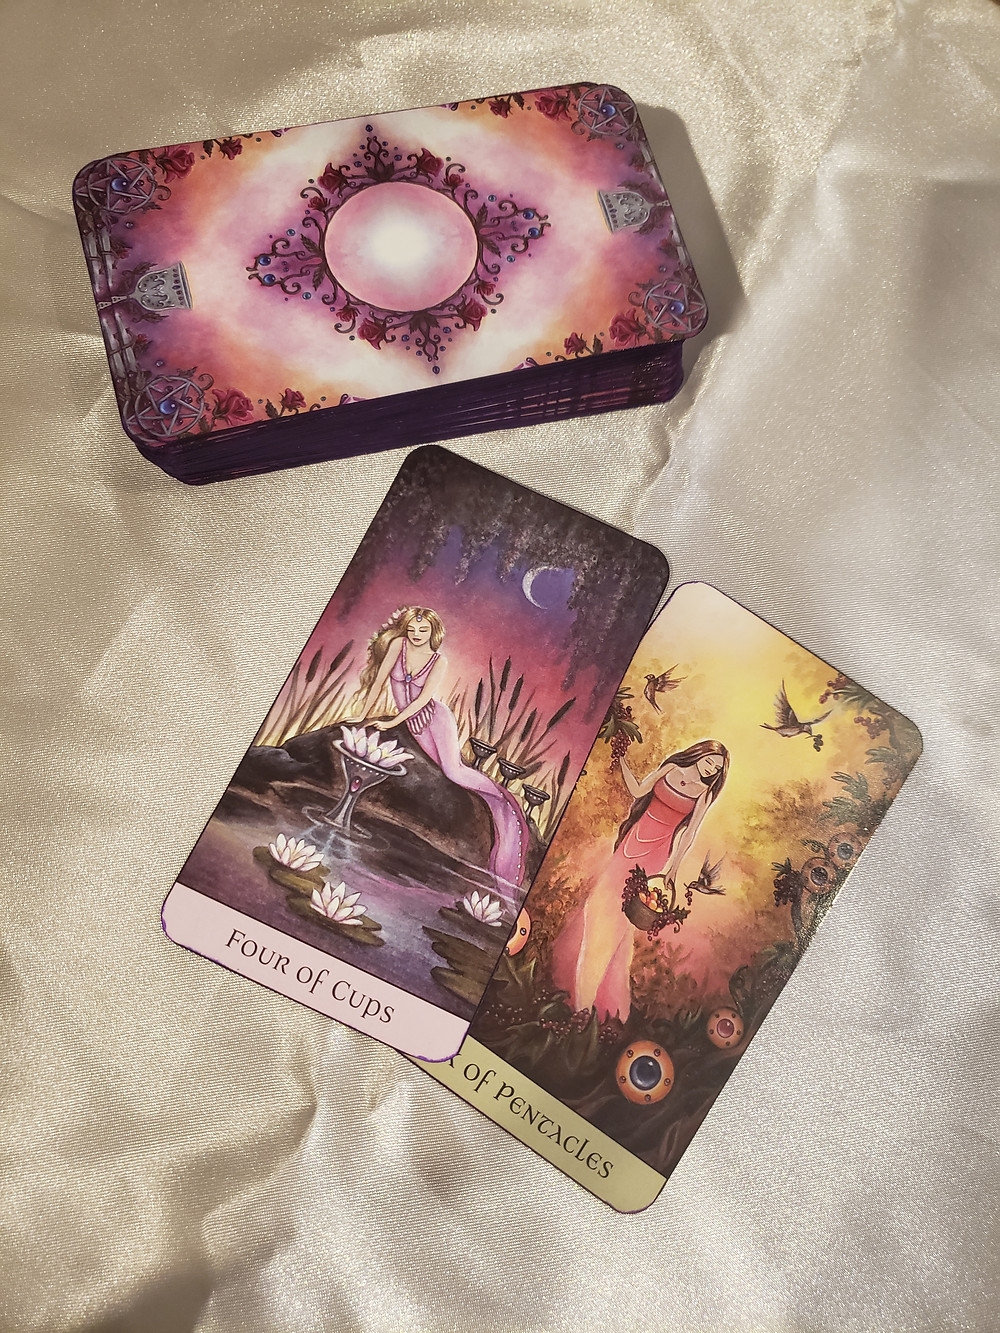 Tarot card reading by SLC crystal healer